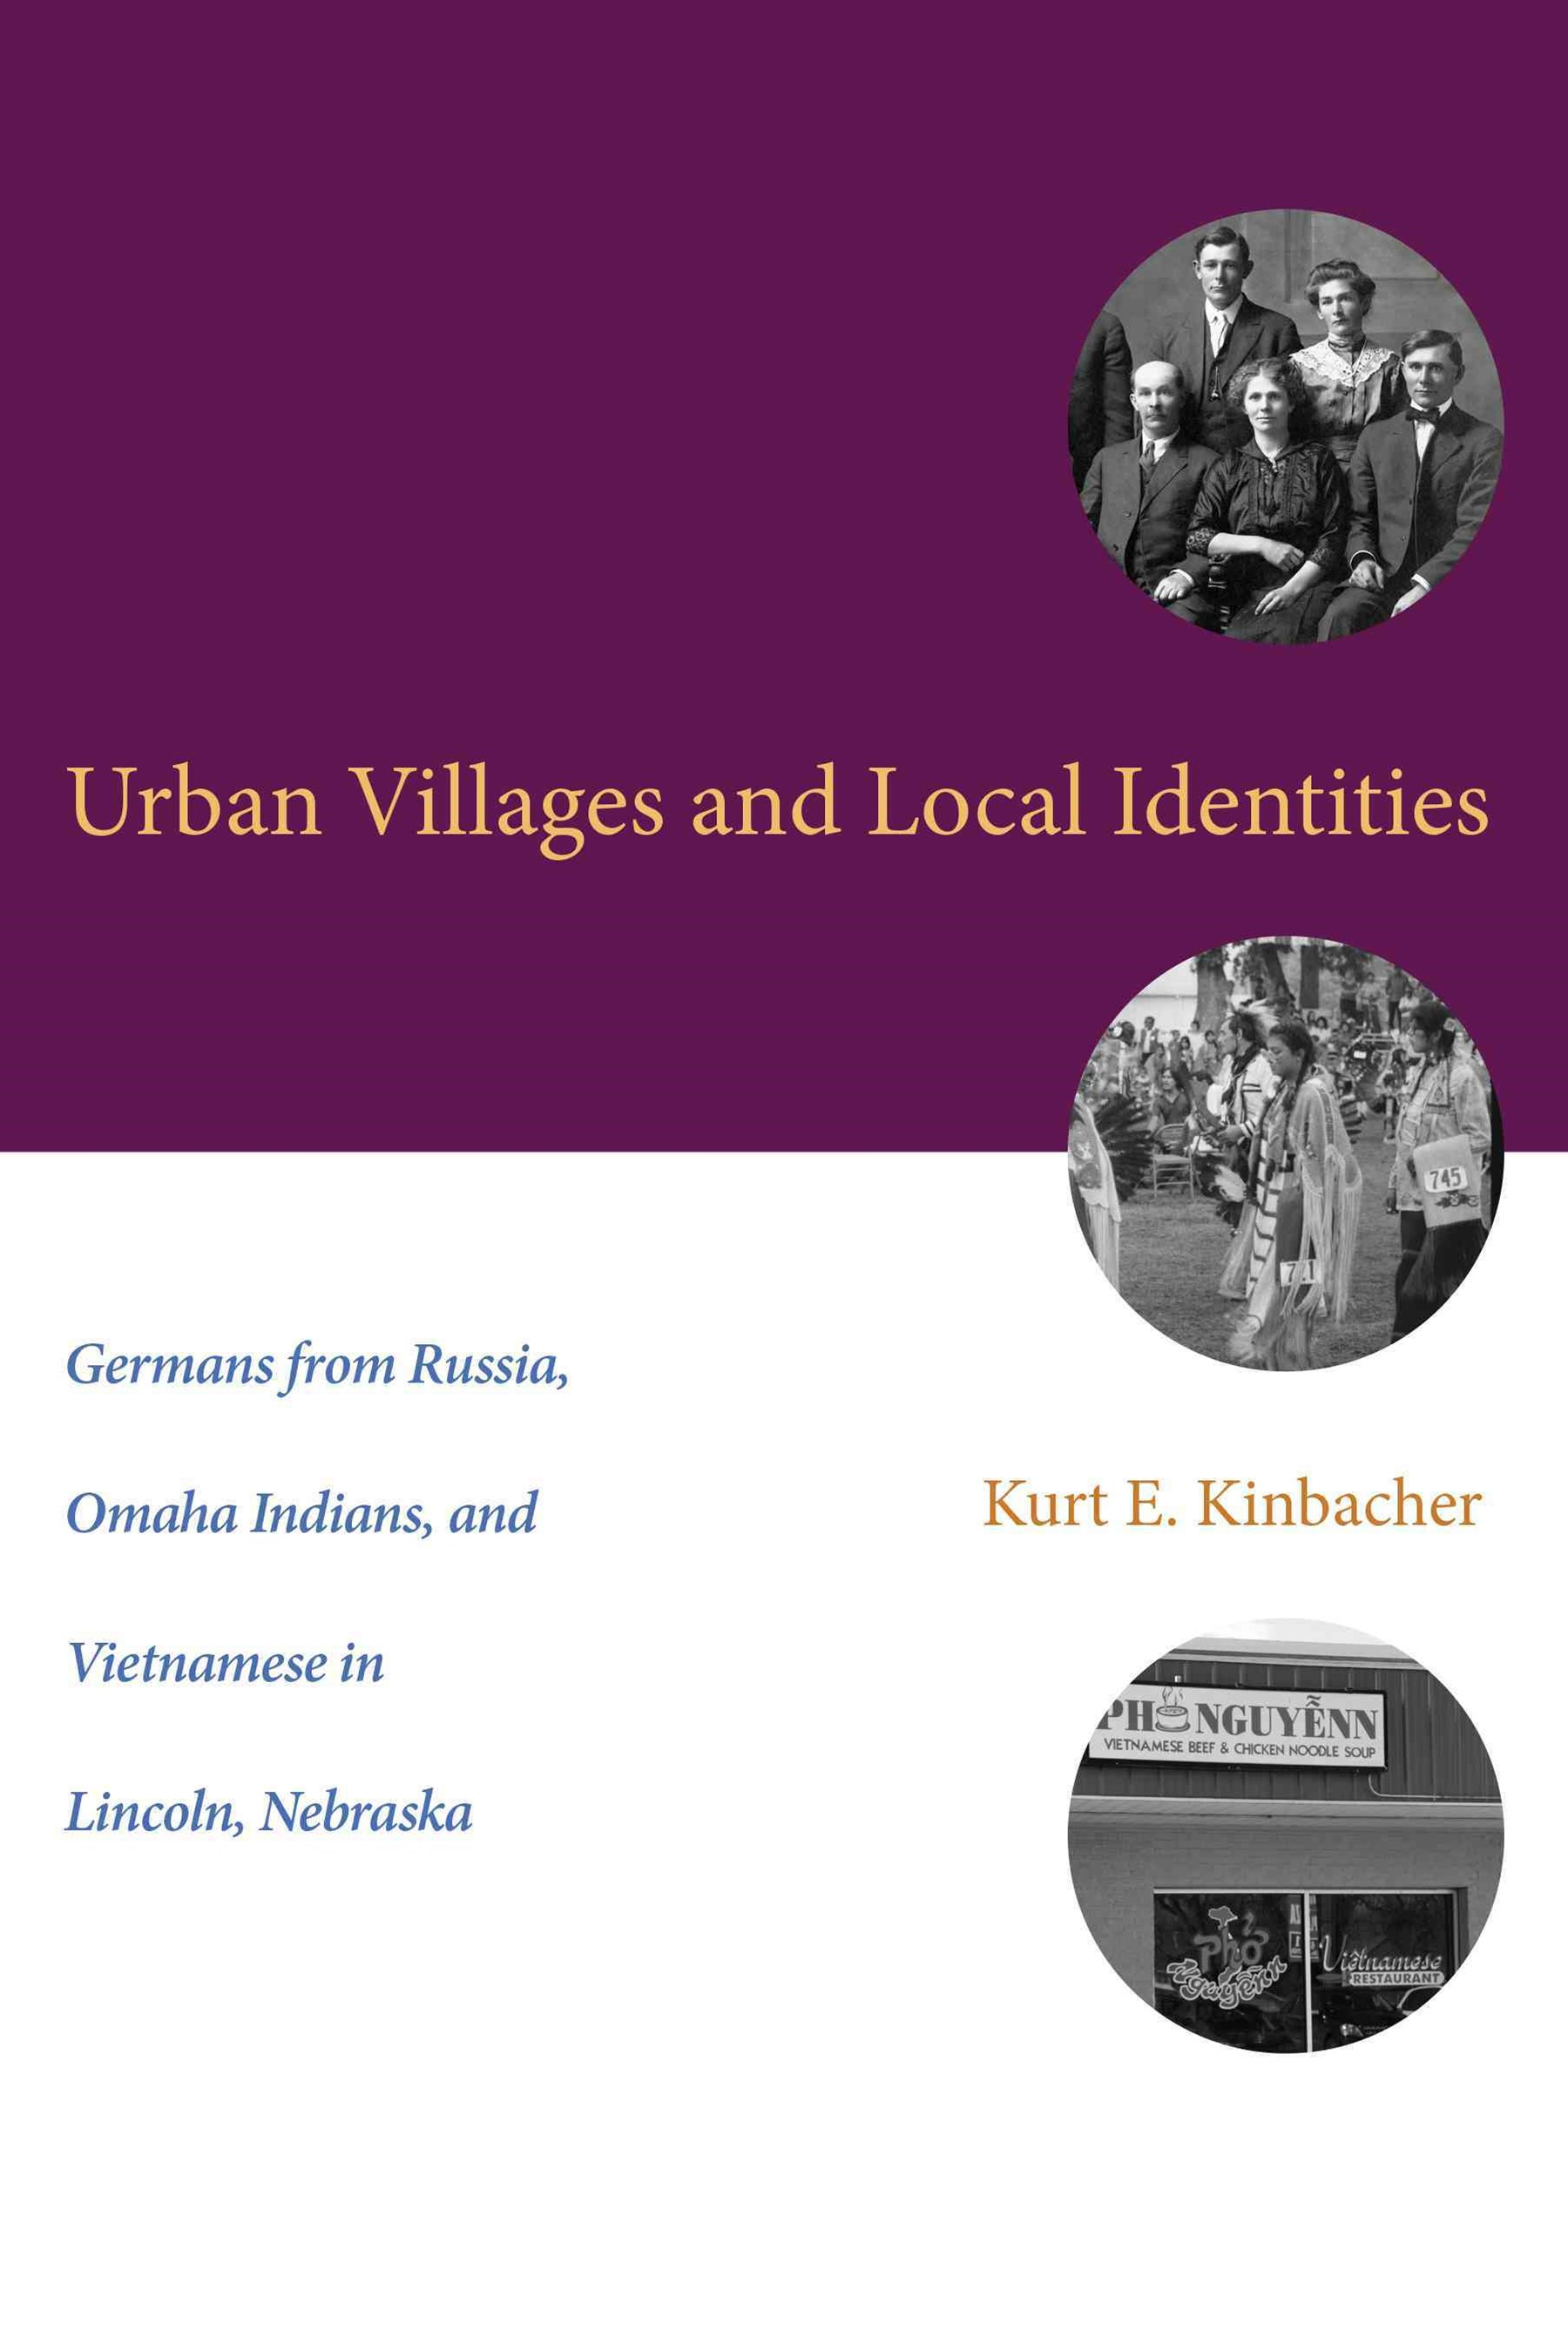 Urban Villages and Local Identities